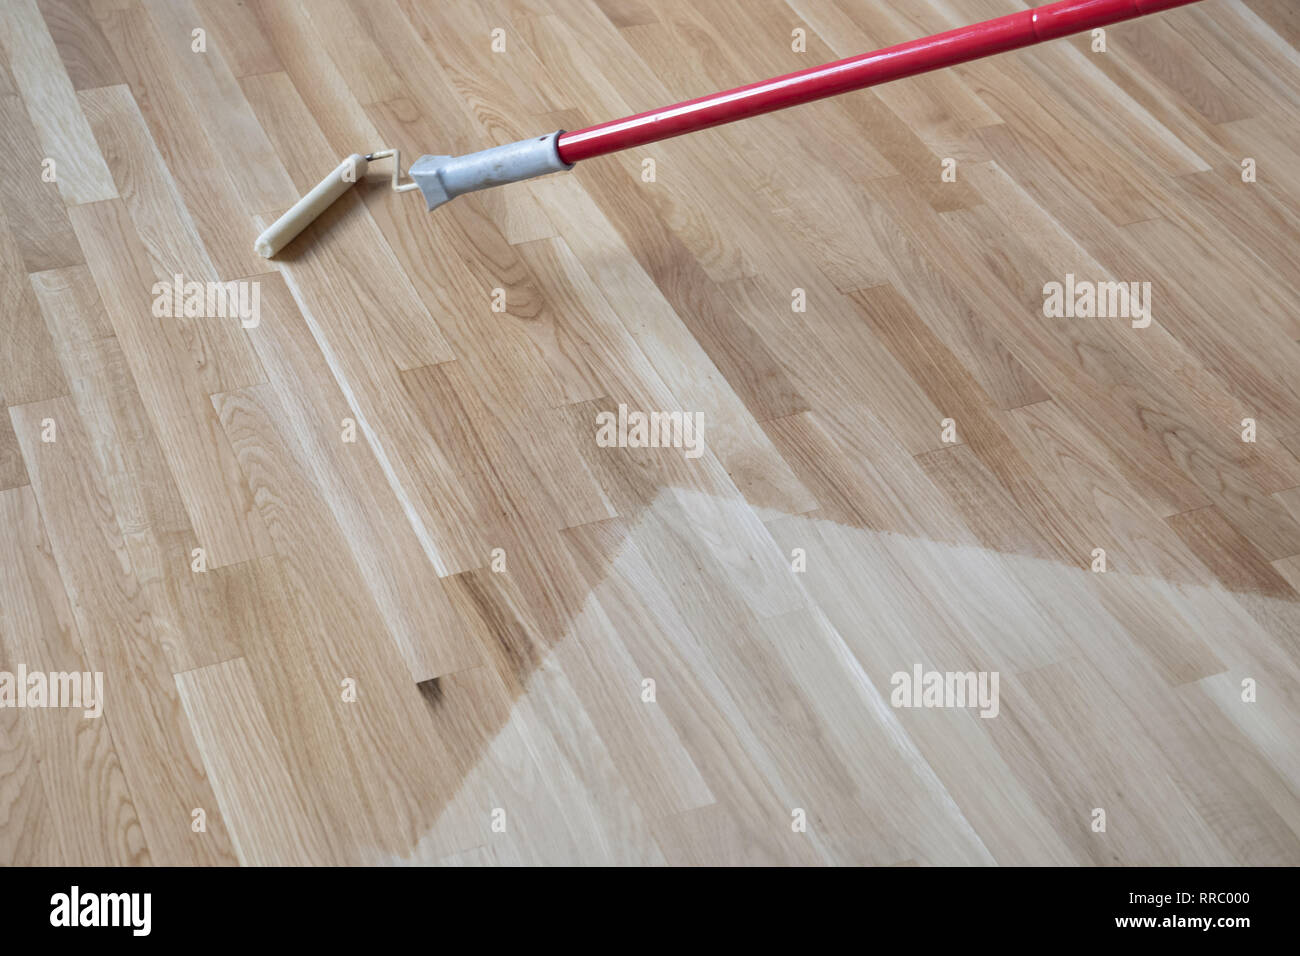 Lacquering Varnishing A Polished Oak Parquet Floor By Paint Roller